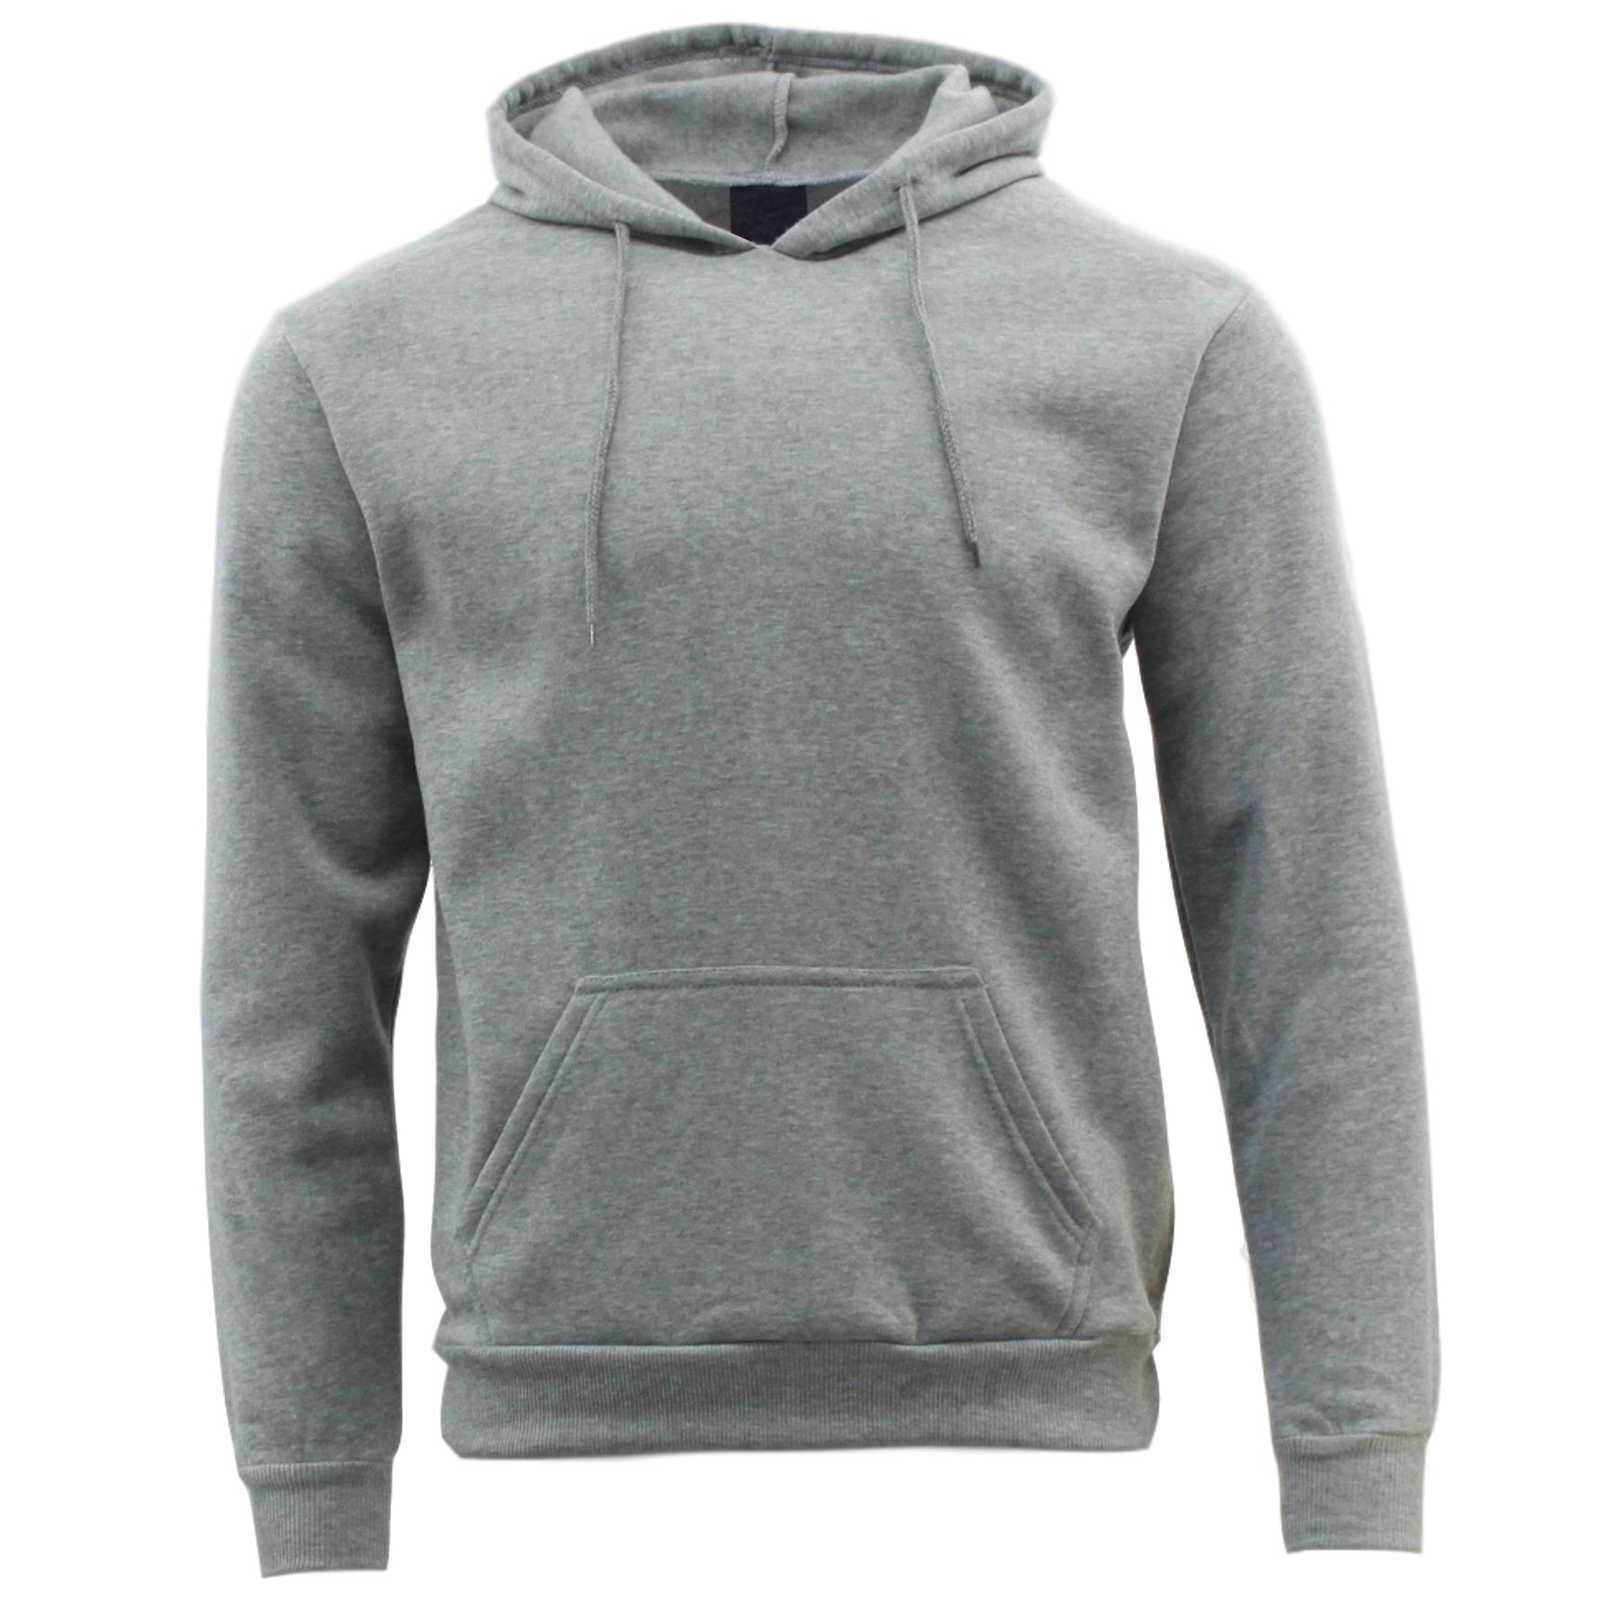 Adult-Men-039-s-Unisex-Basic-Plain-Hoodie-Jumper-Pullover-Sweater-Sweatshirt-XS-5XL thumbnail 45